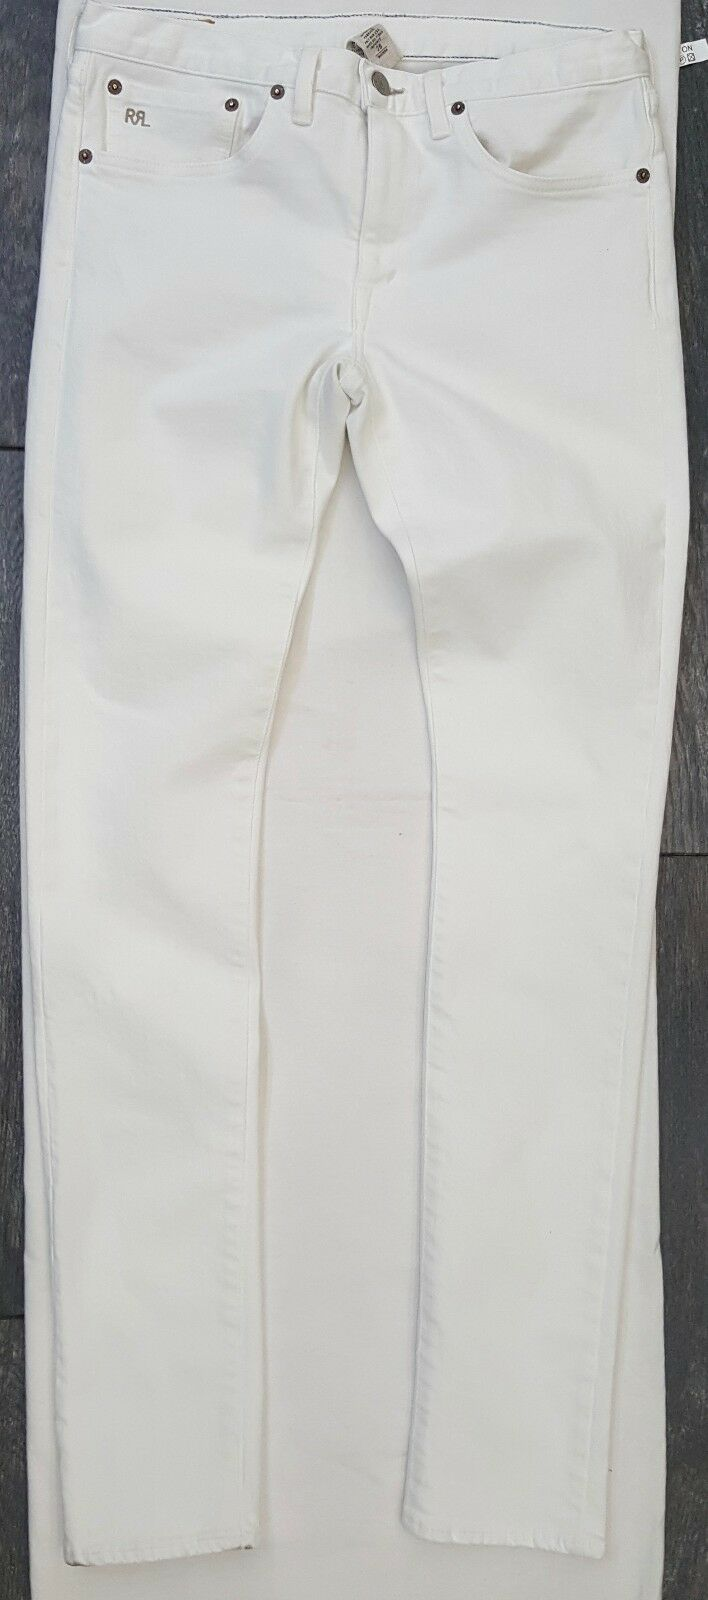 340 RRL Ralph Lauren WHITE SKINNY FIT STRETCH JEANS MADE IN USA SIZE 28